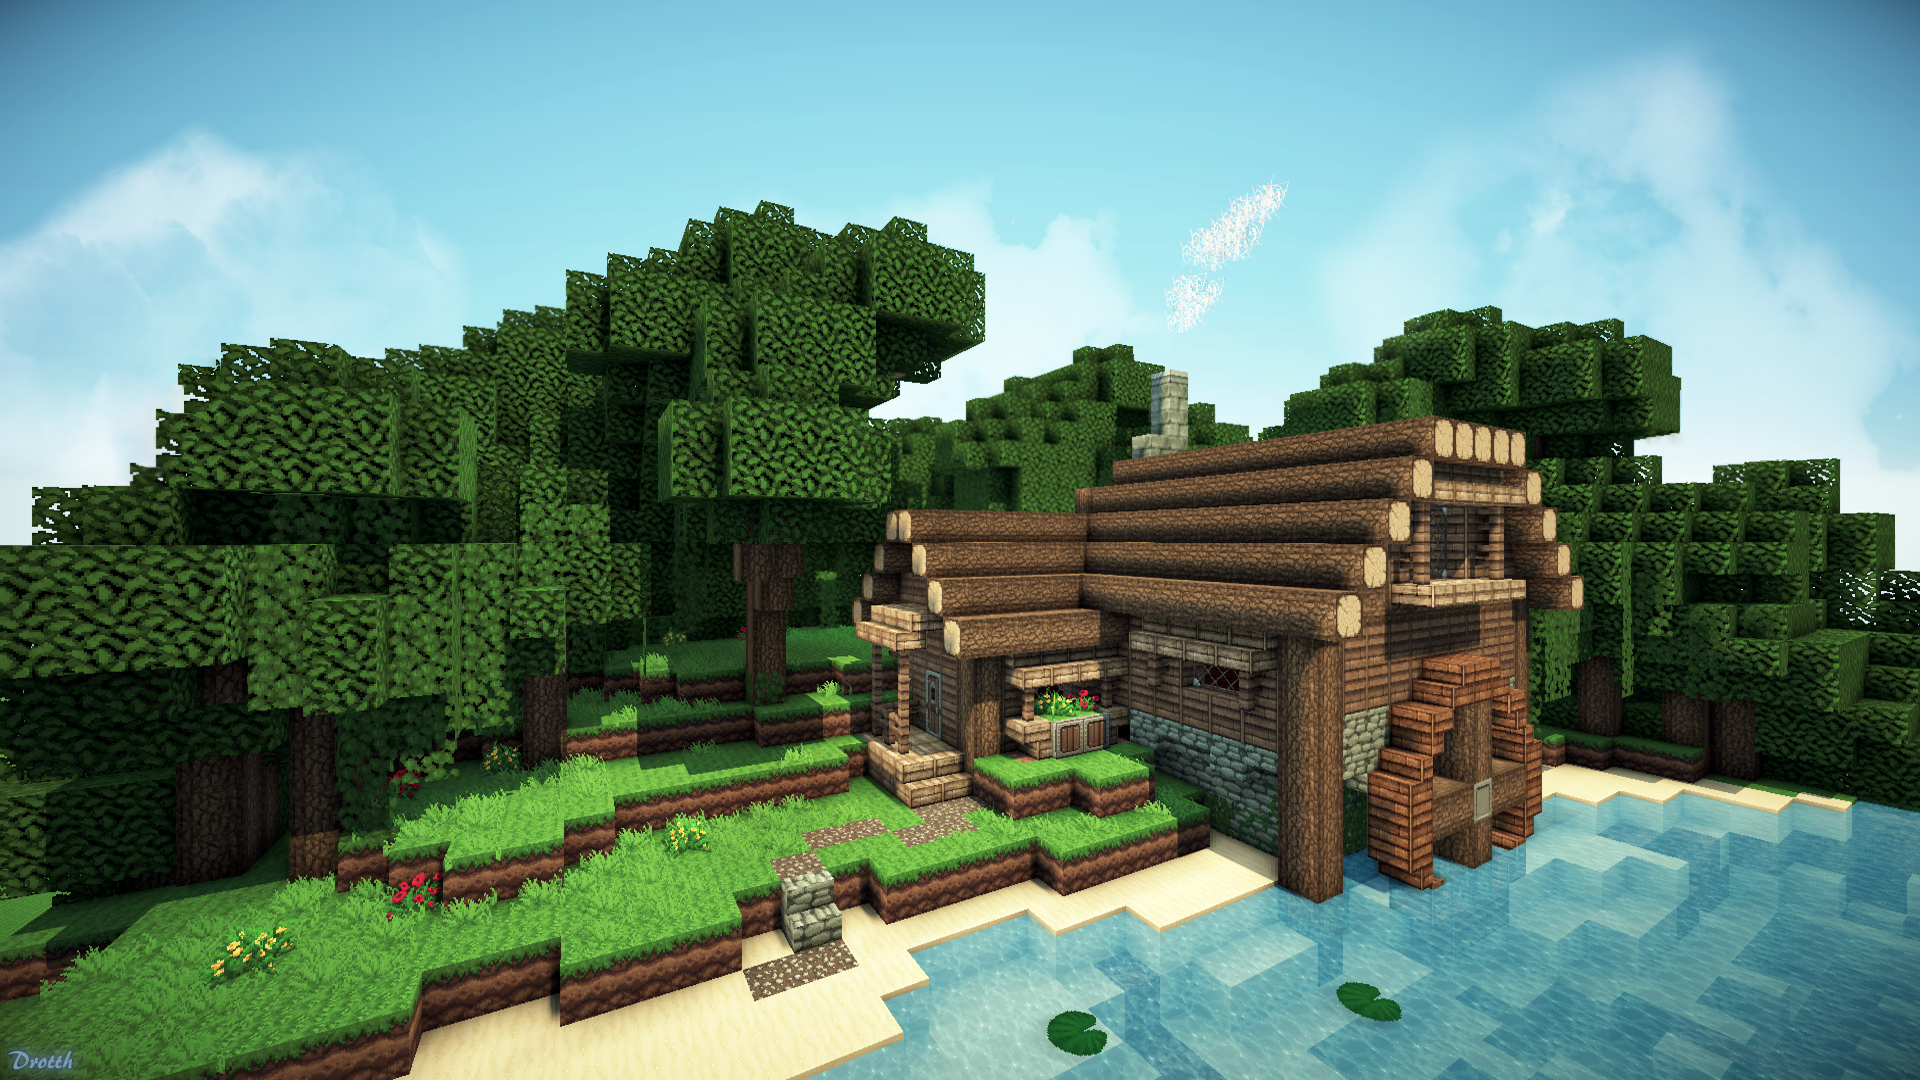 Great Wallpaper Minecraft Houses - 620fcbf256cb596c625a530c31c2ebd3  Perfect Image Reference_783966.jpg